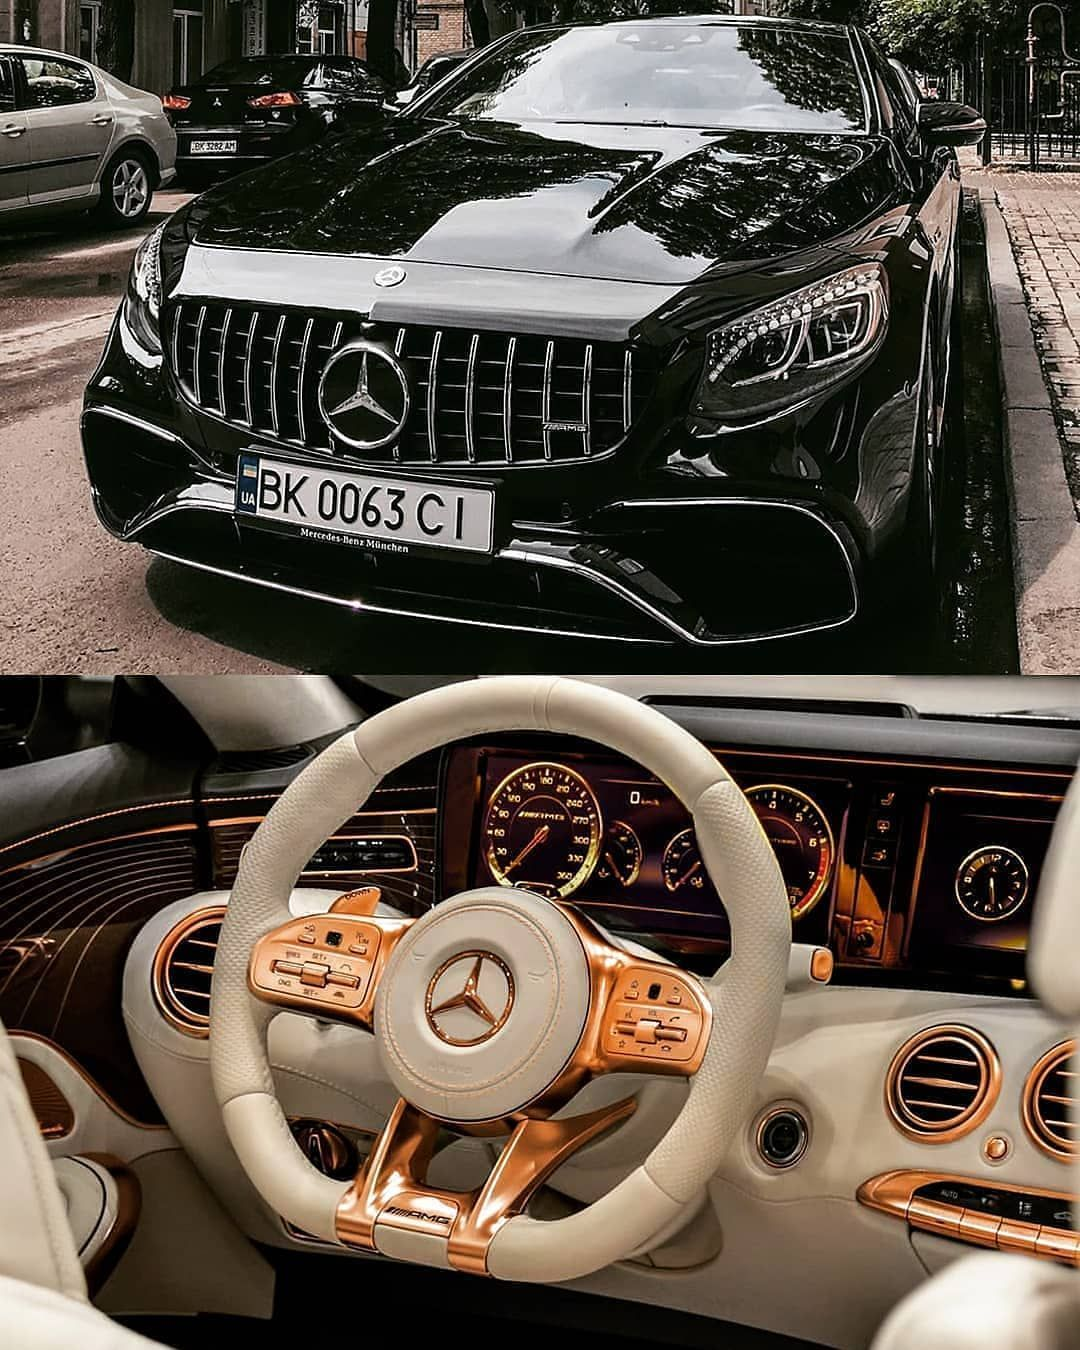 Rosegold Mercedes Benz S63amg Coupe Follow Uber Luxury For More Courtesy Of Younis Pho In 2020 Mercedes Benz Mercedes Benz